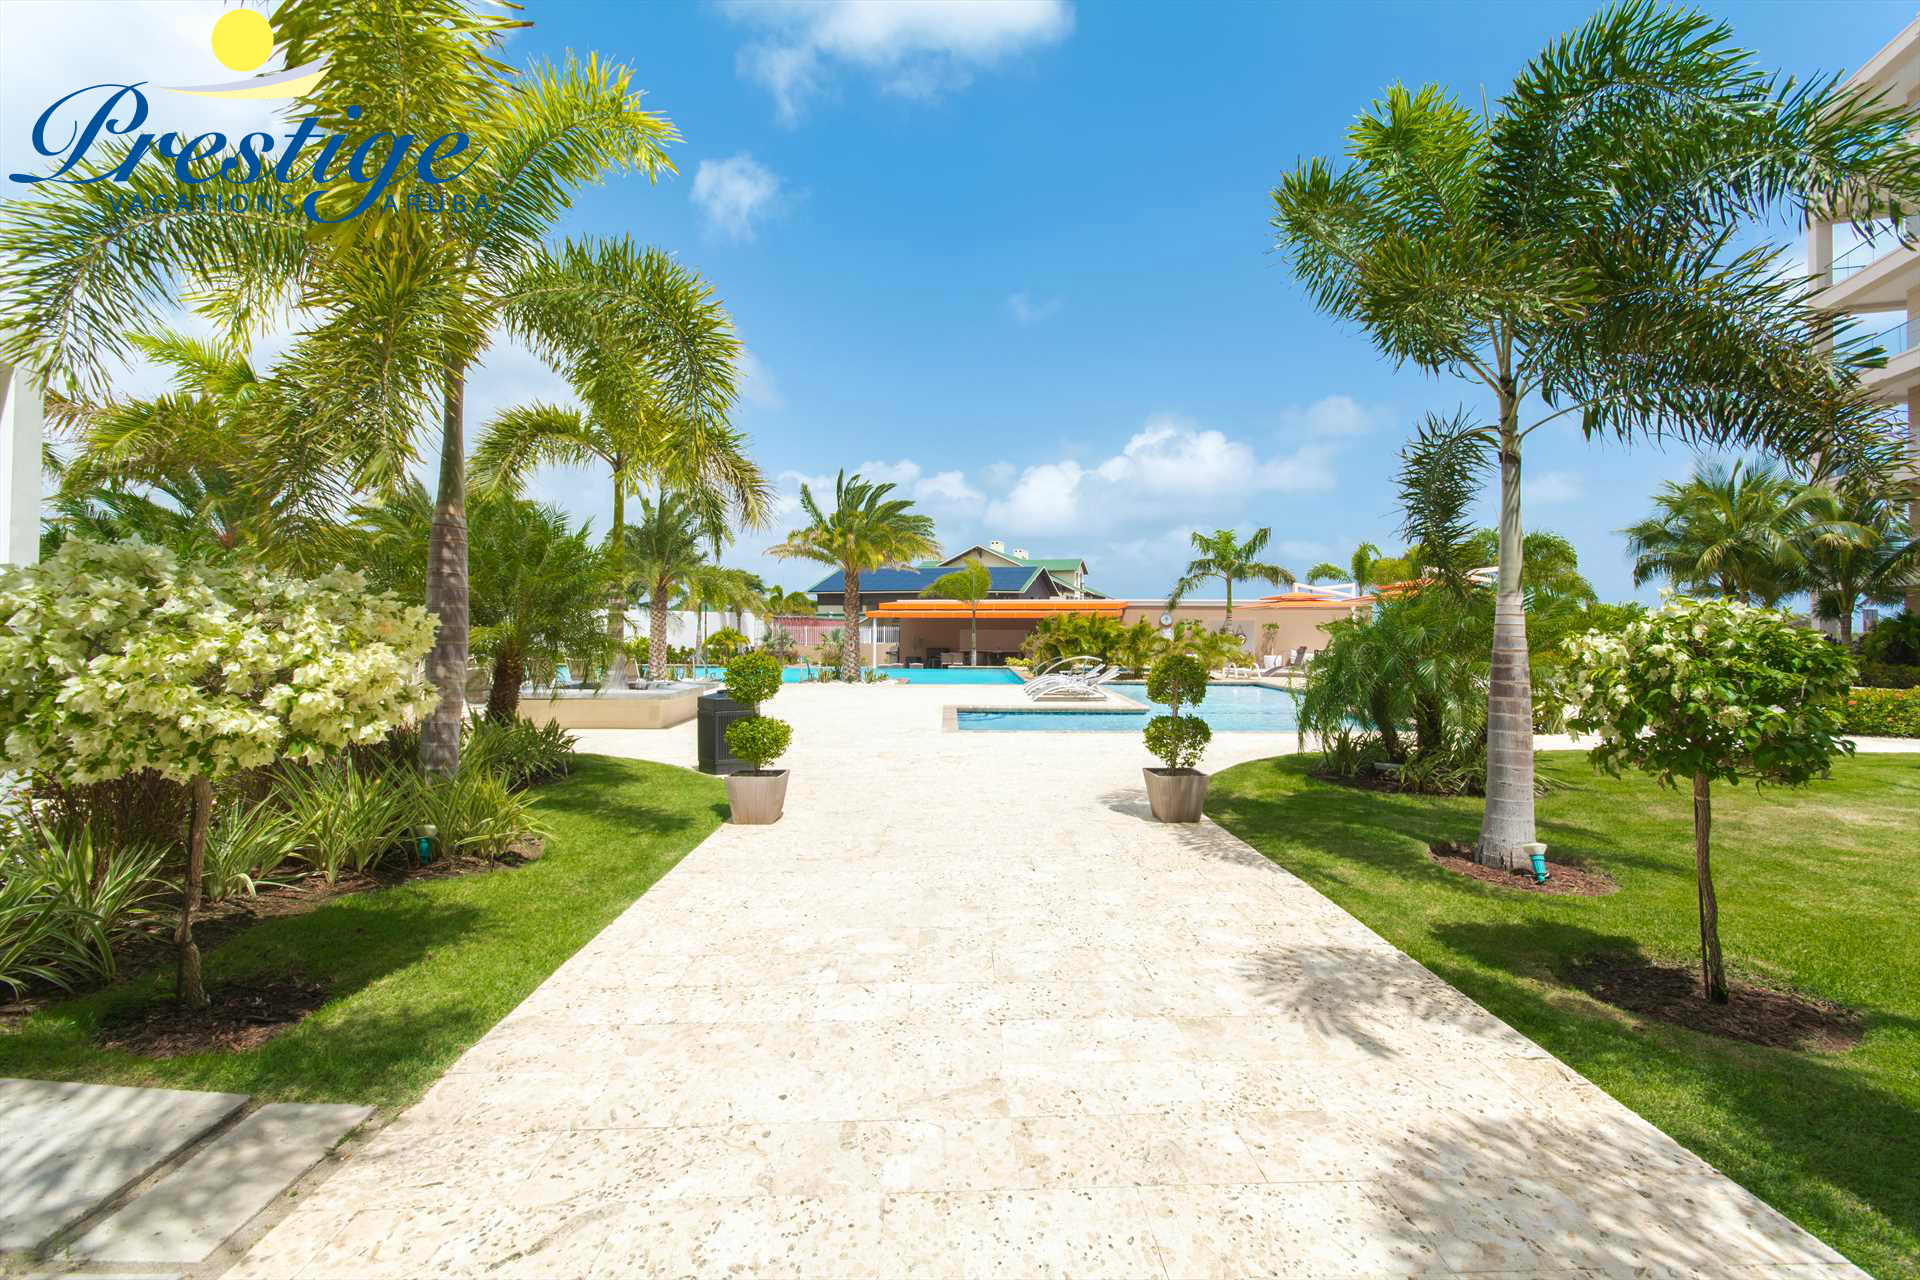 Just a few steps from the resort pool and outdoor areas!